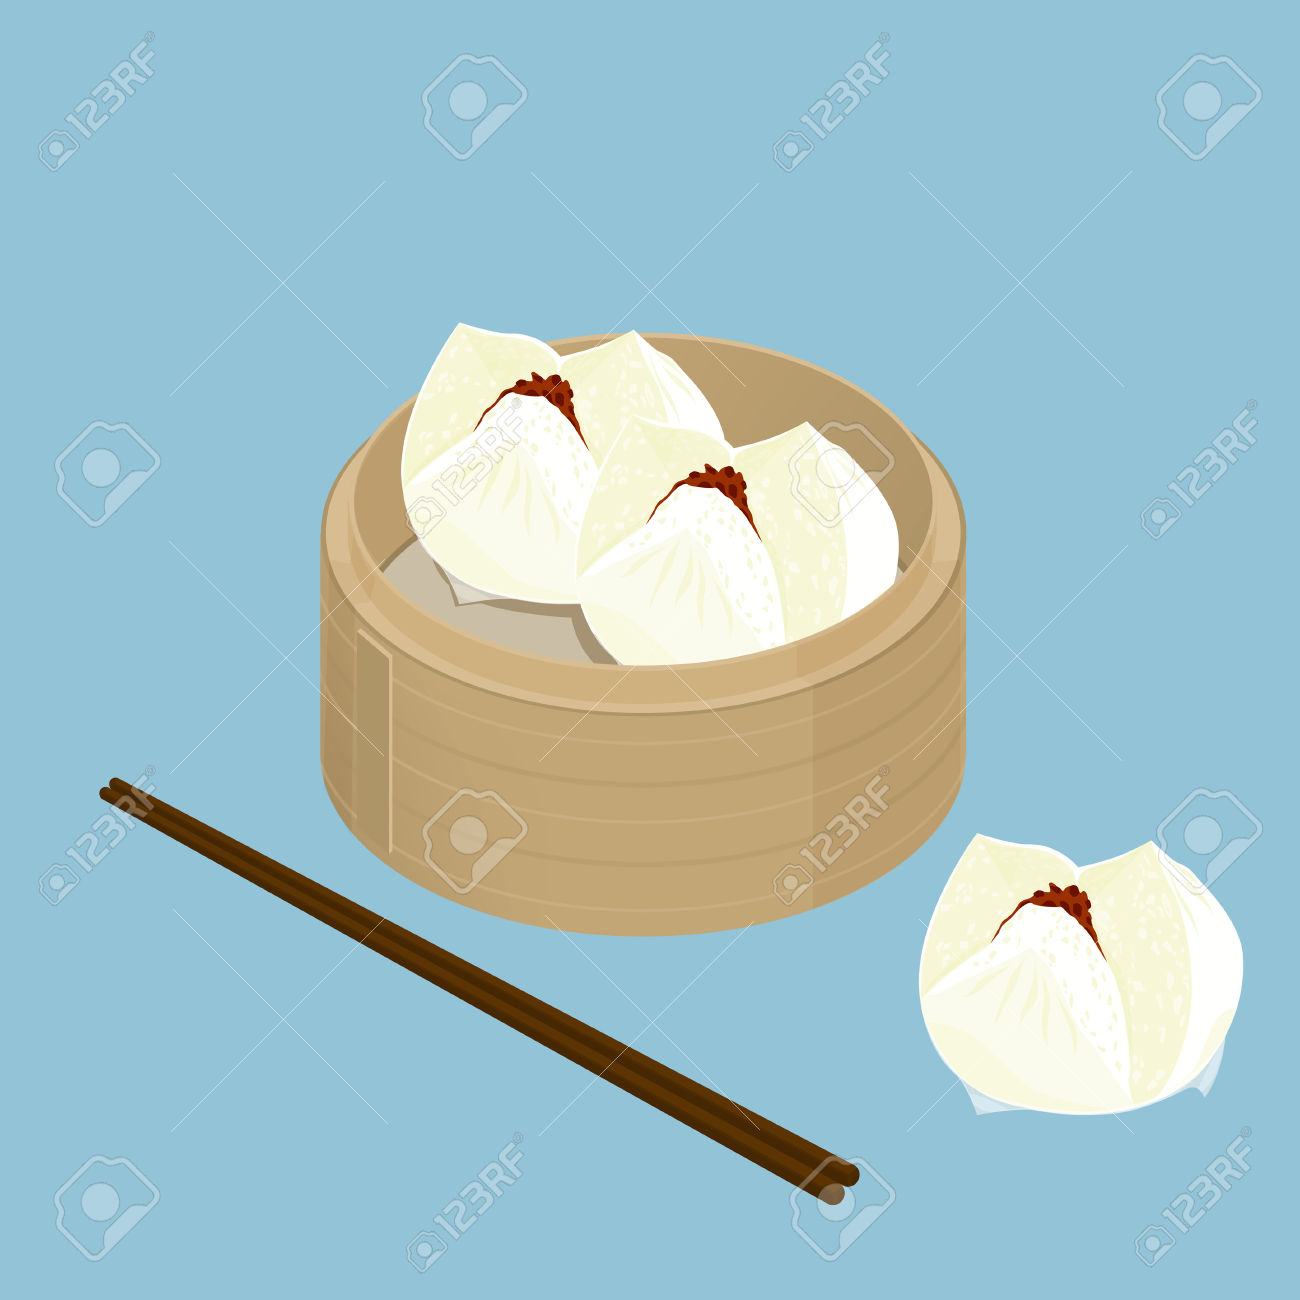 95 Steamed Pork Bun Cliparts, Stock Vector And Royalty Free.